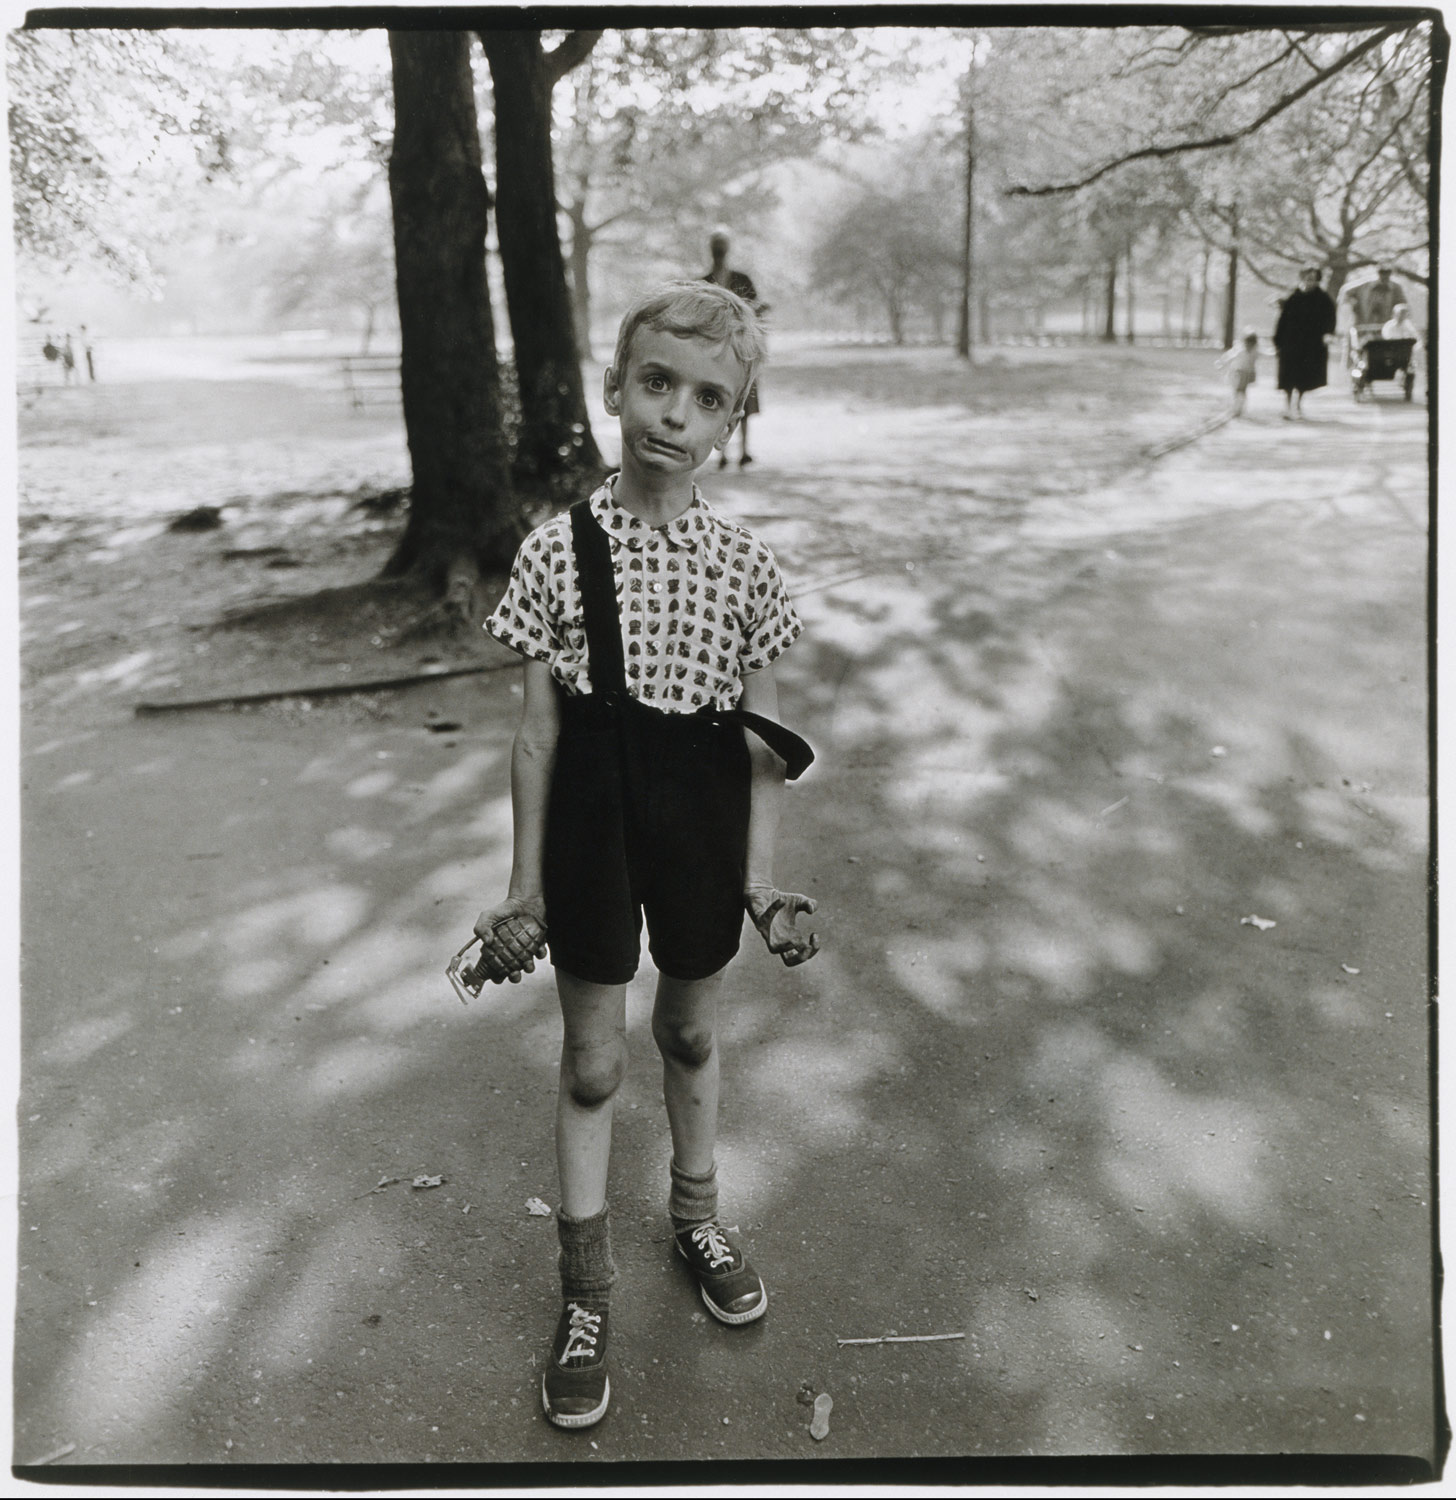 Diane Arbus, Child with Toy Hand Grenade, 1962